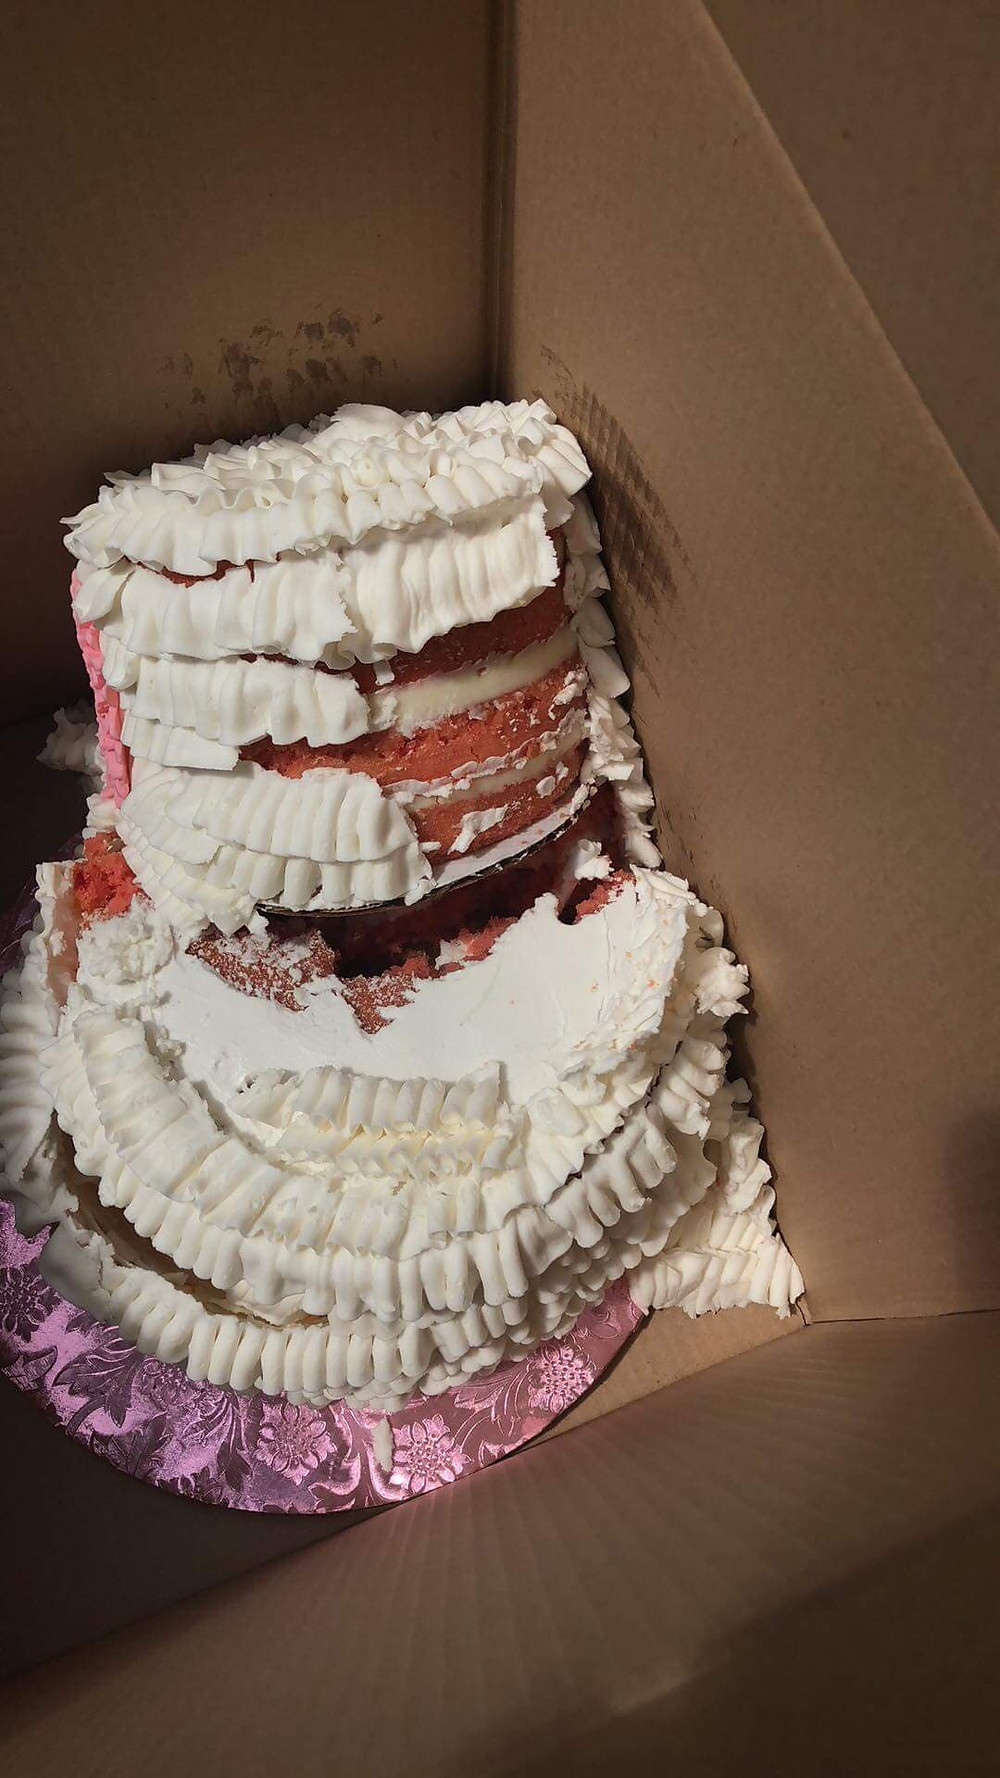 Cake disaster after it was travelling in a car